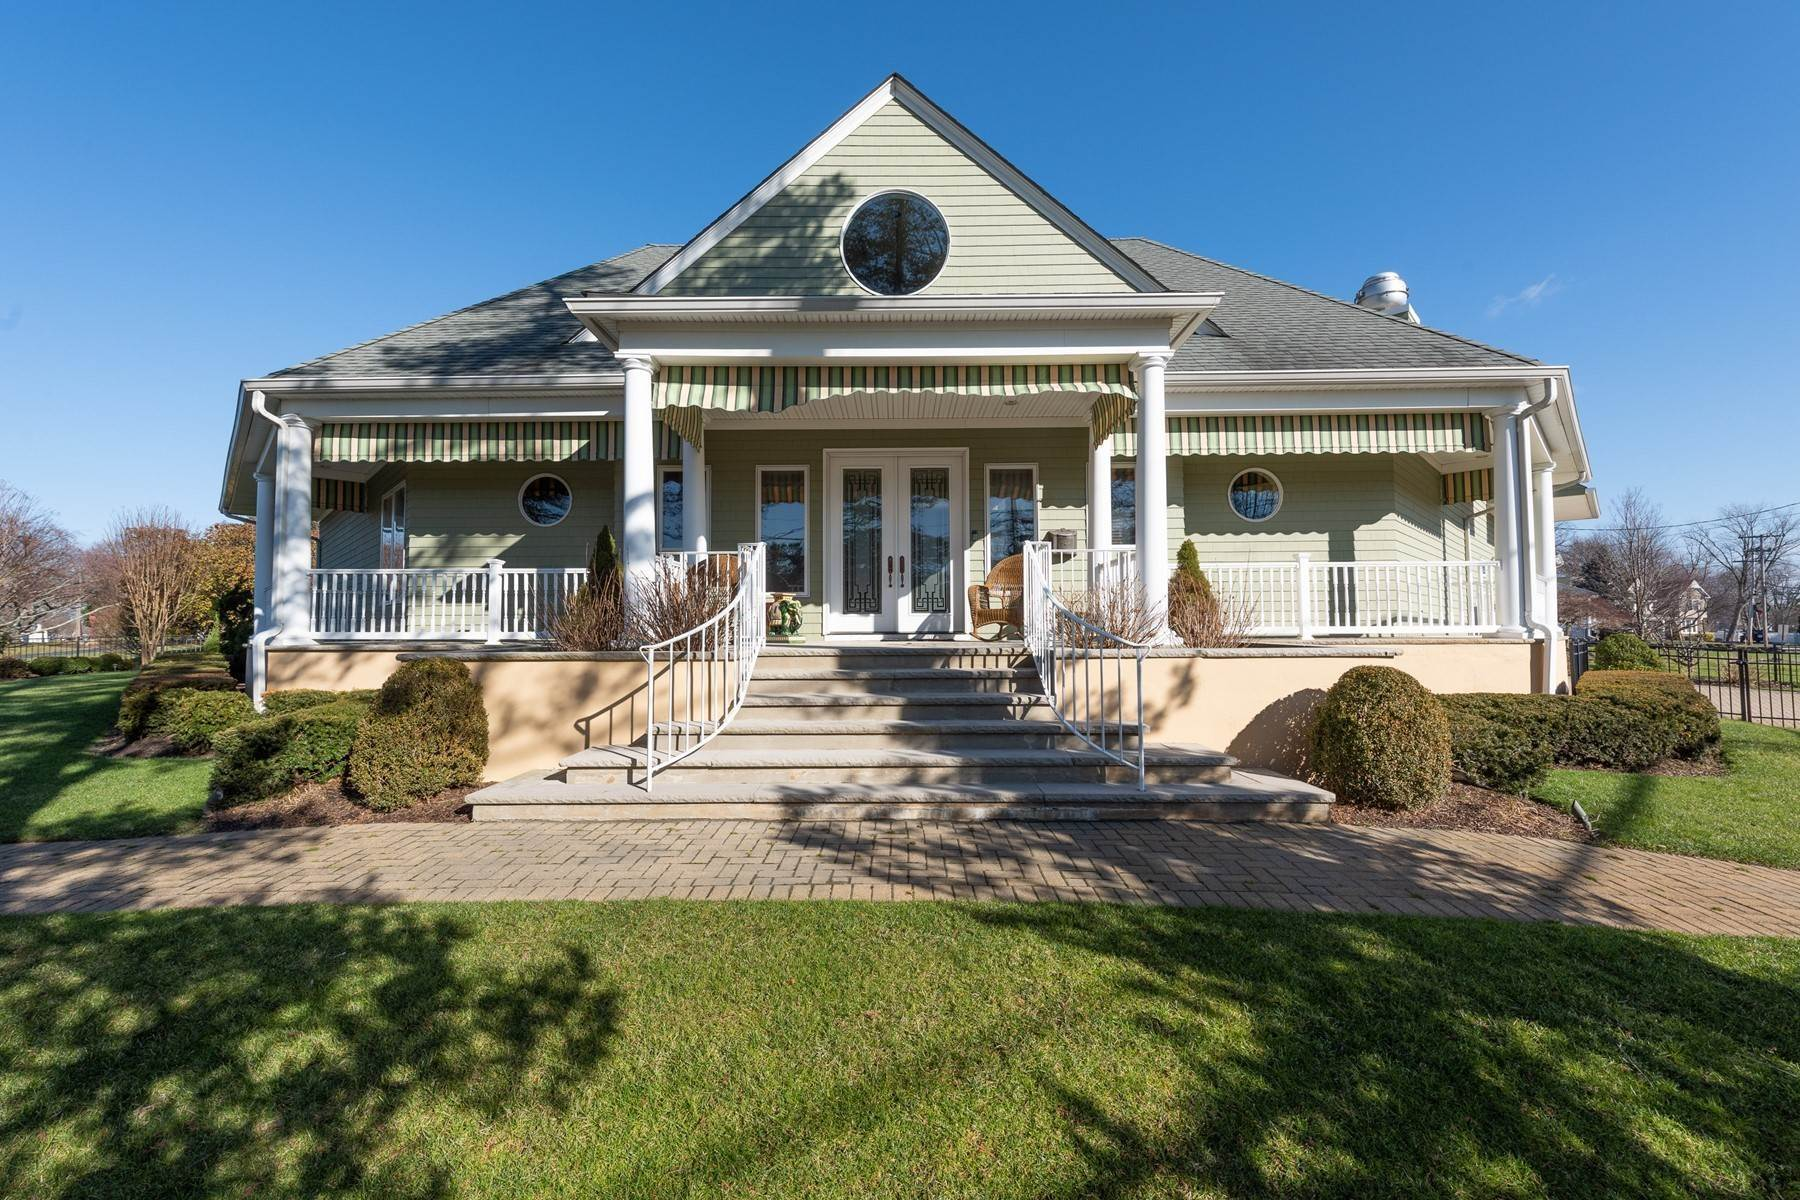 Single Family Homes for Sale at 1 Monmouth Pkwy 1 Monmouth Parkway Monmouth Beach, New Jersey 07750 United States